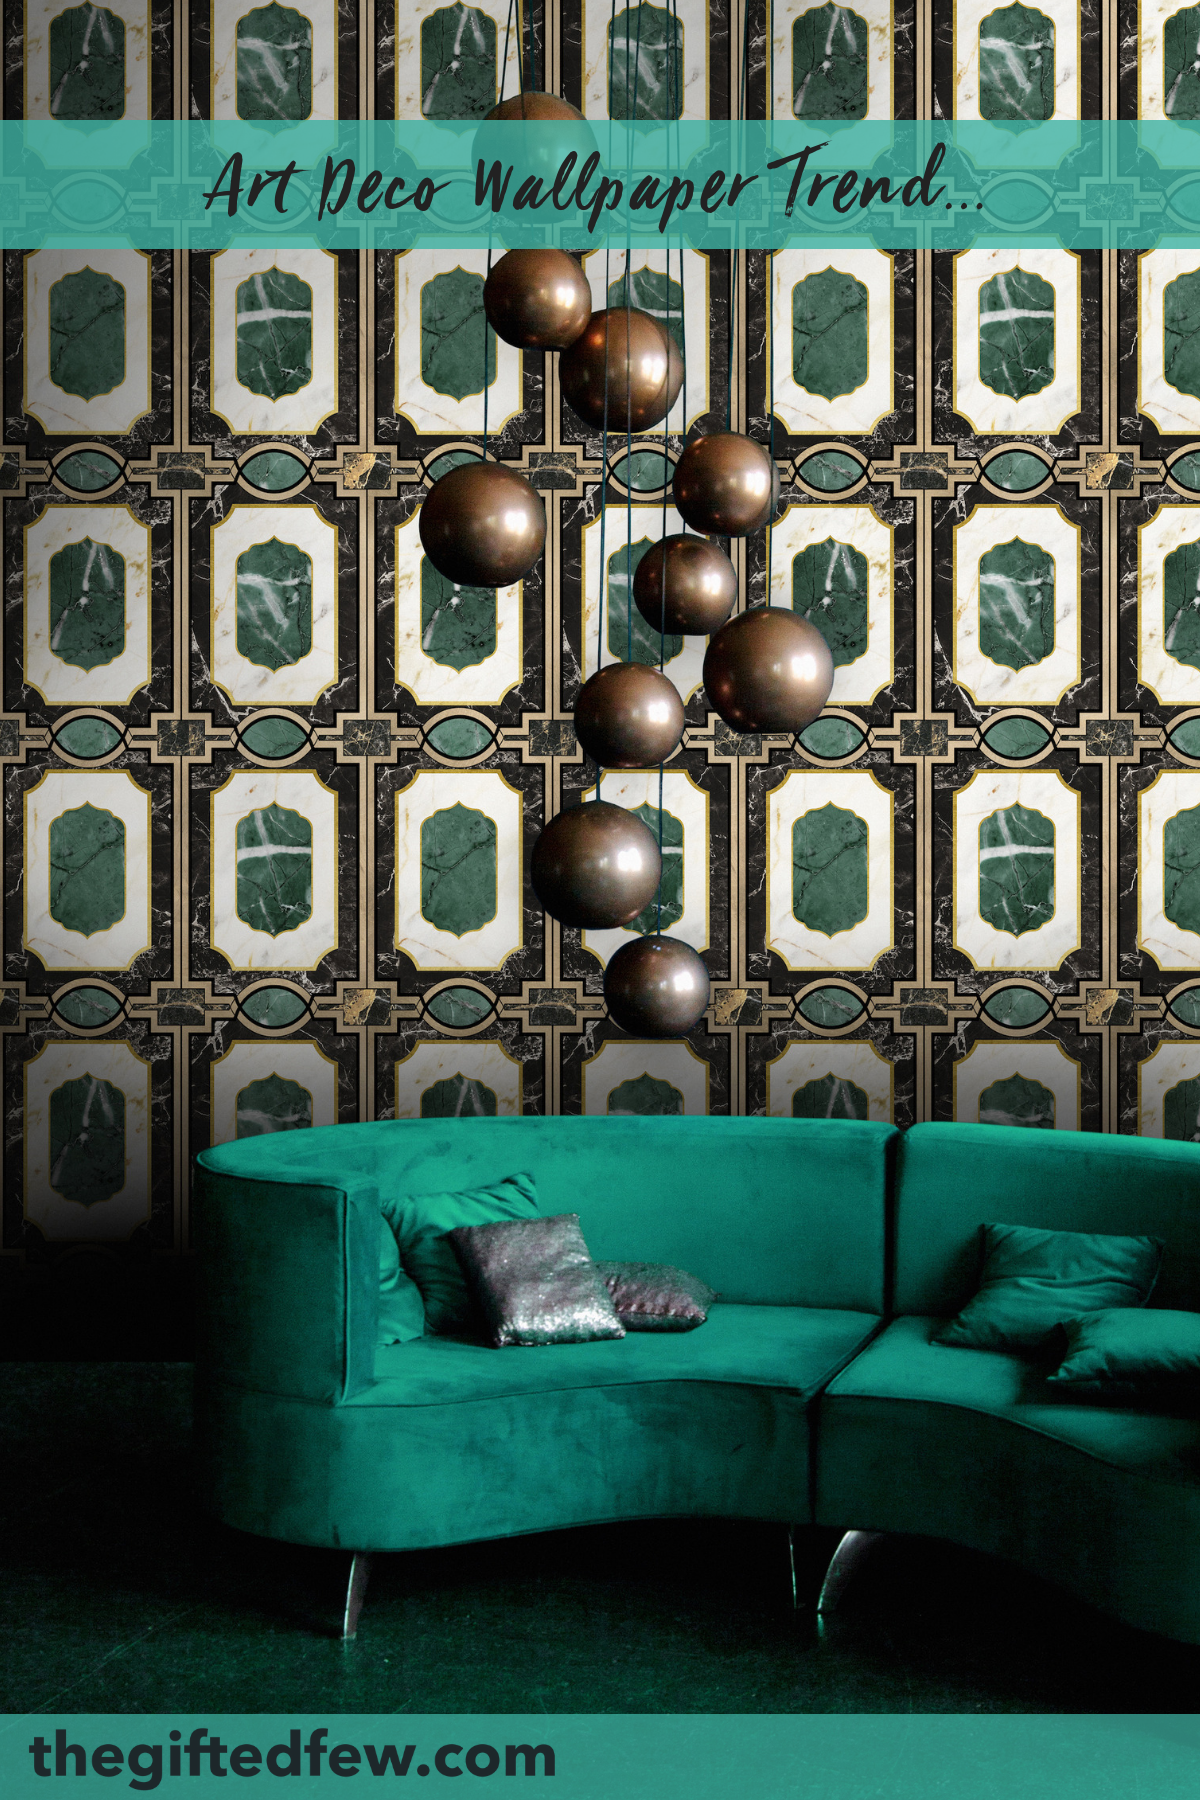 Best Waldorf Emerald Wallpaper Art Deco Wallpaper Art Deco 400 x 300